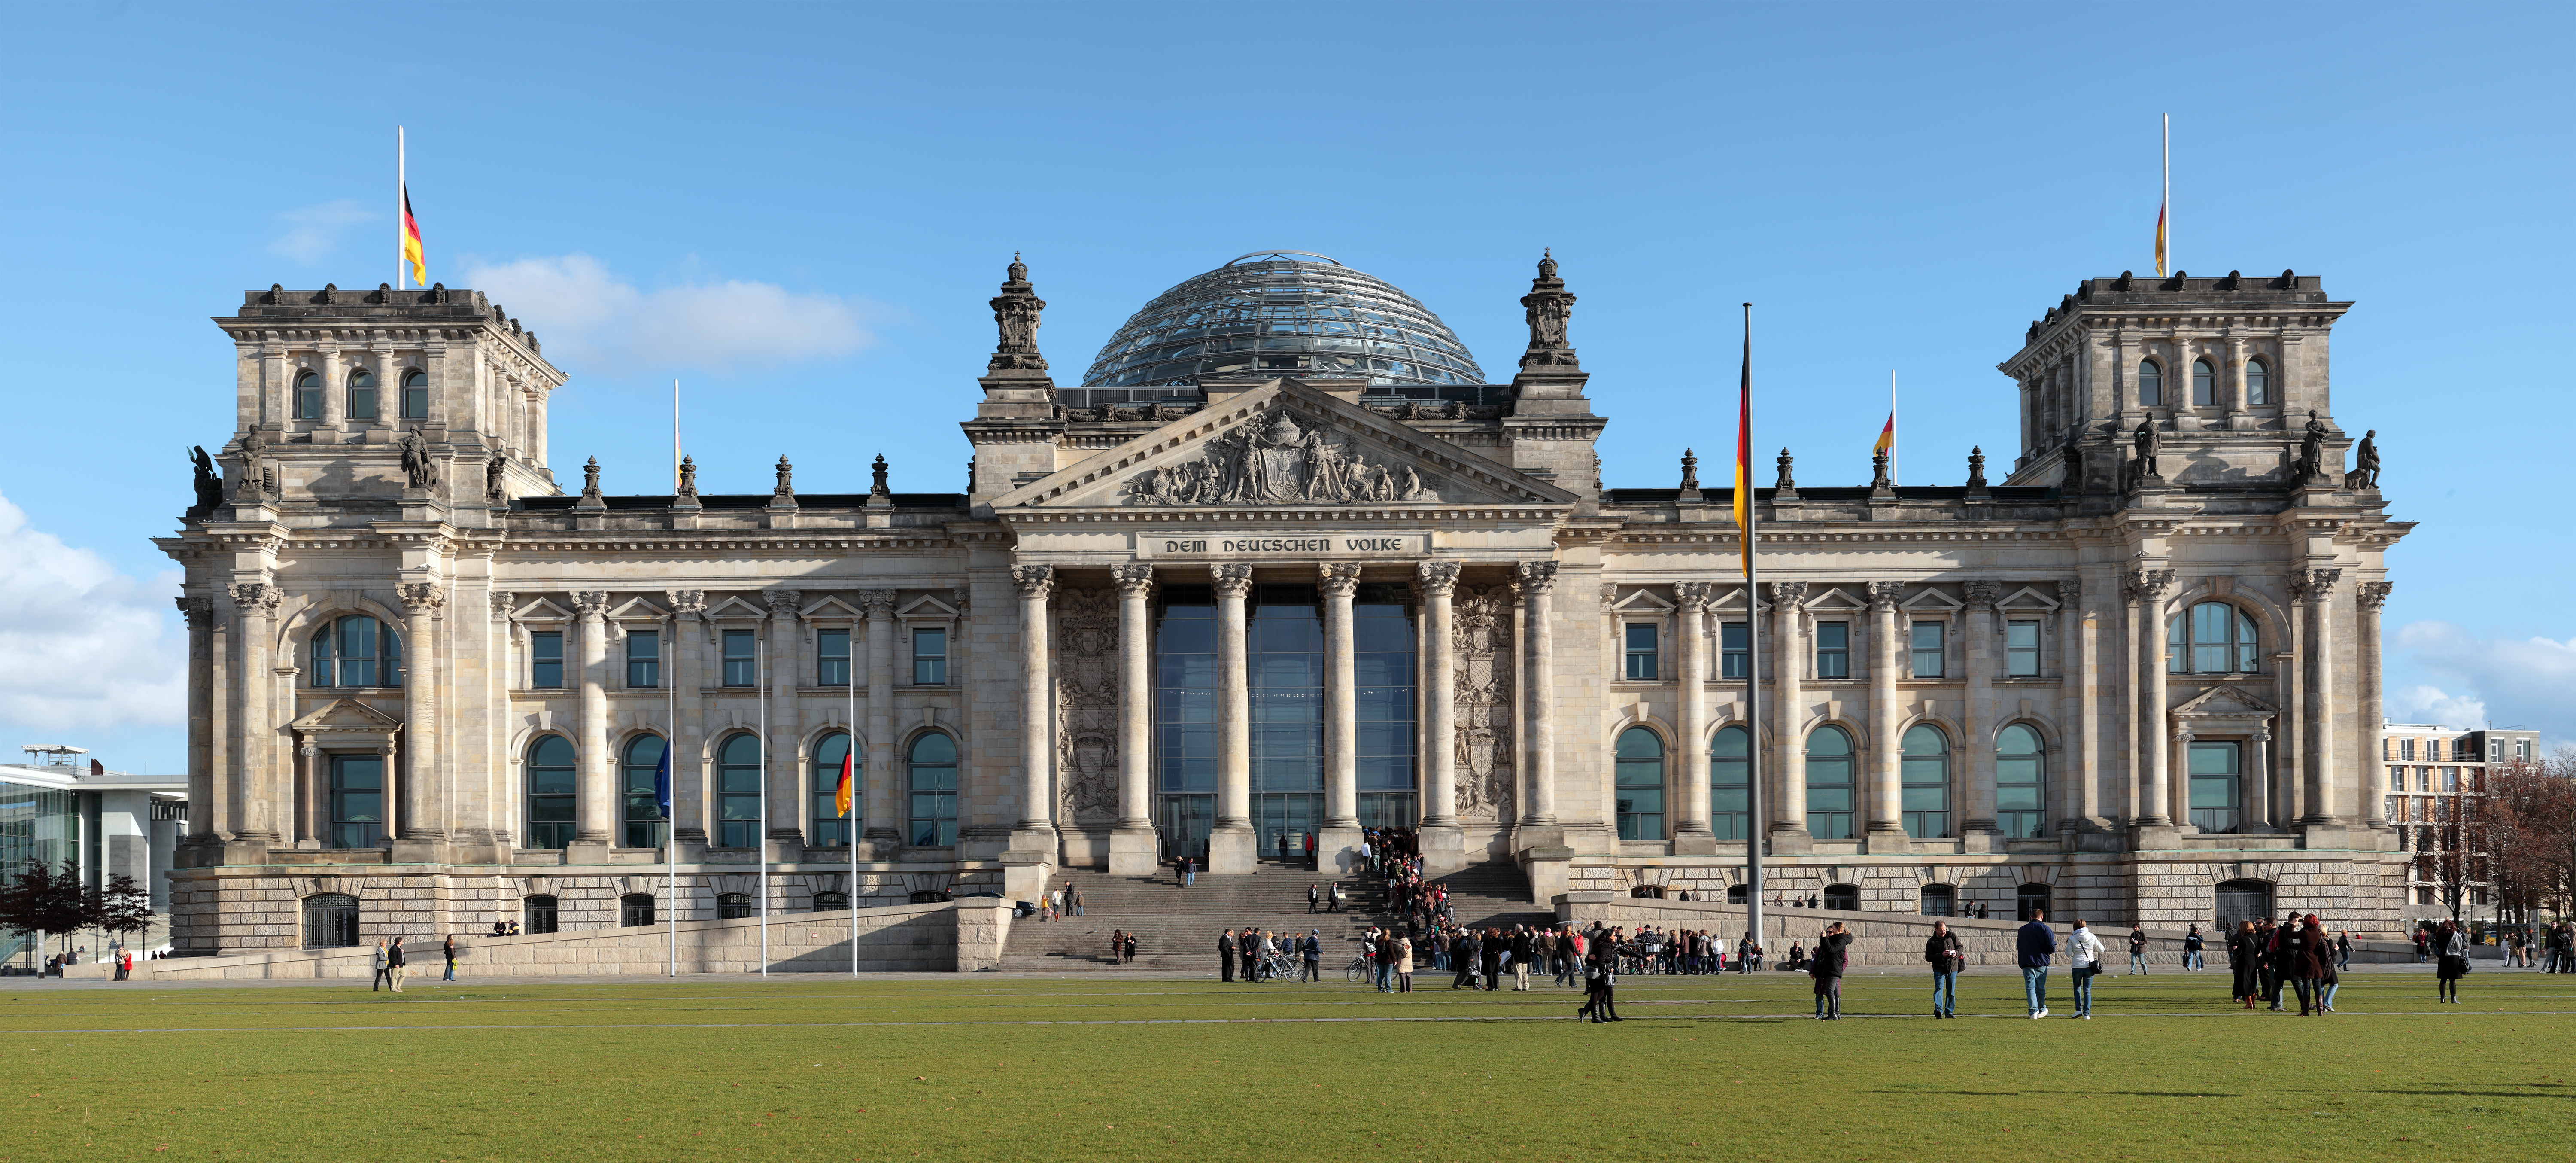 reichstag at berlin city - photo #10